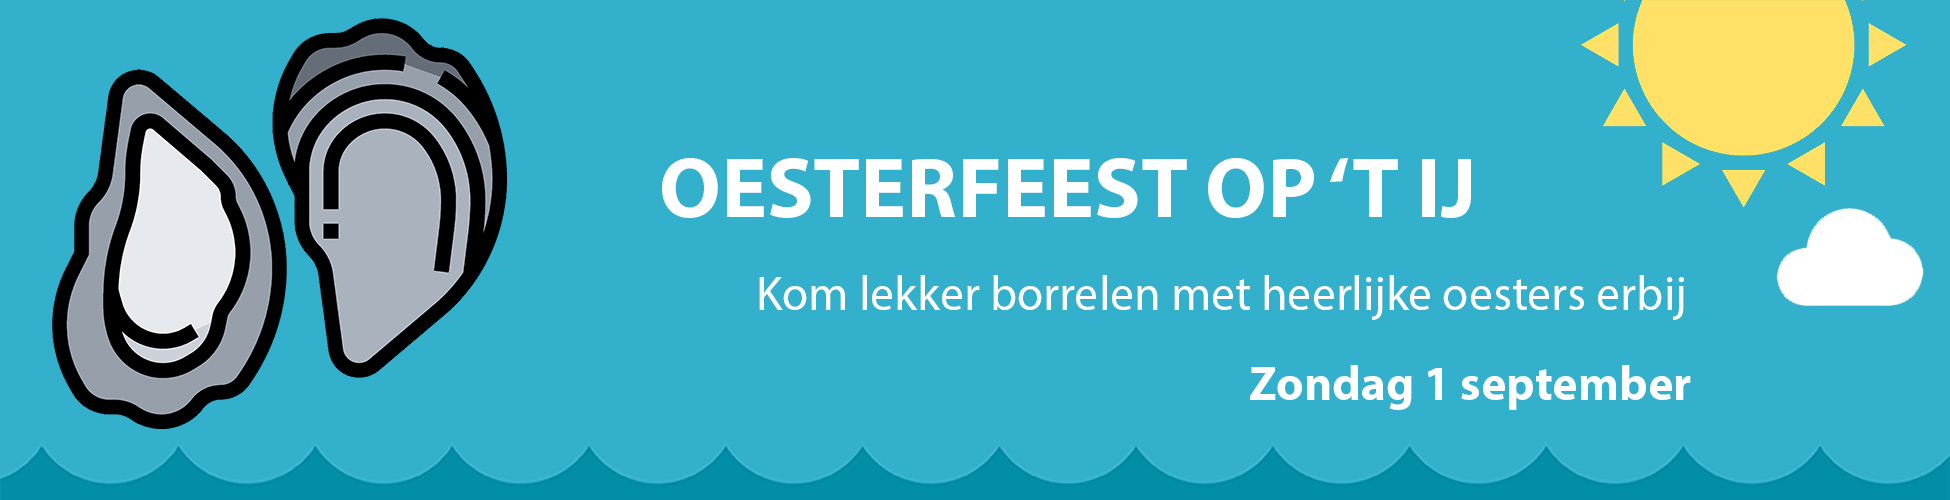 oesterparty boot amsterdam evenement